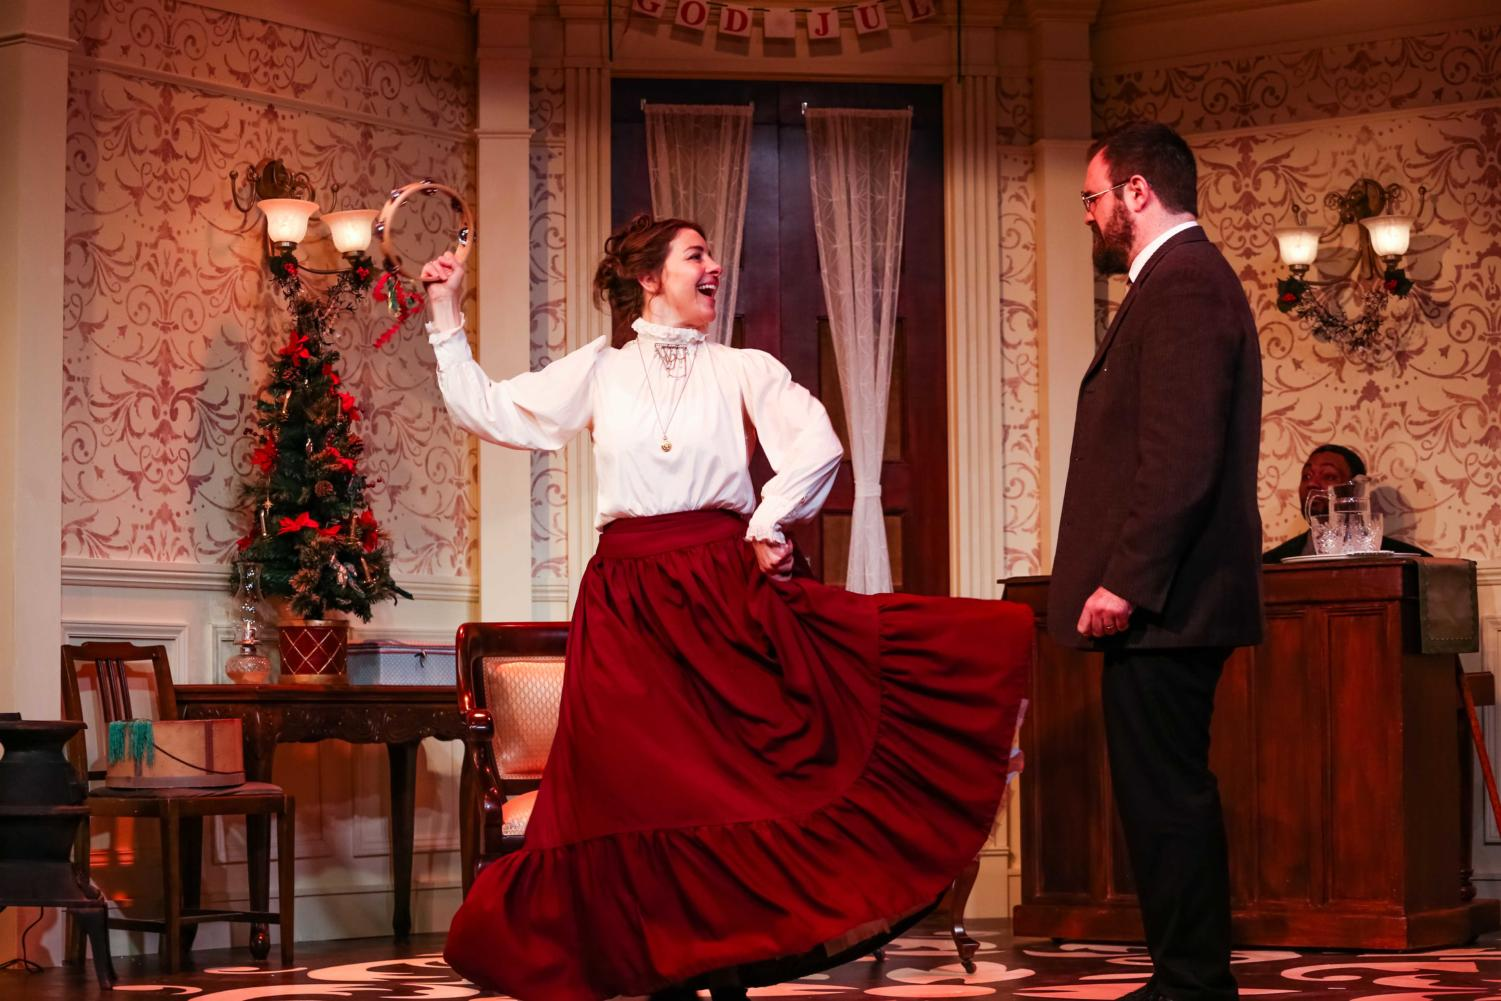 Nora (Annie Green) and Torvald (Sean Neely) in A Doll's House. Photo by Tacoma Little Theater.